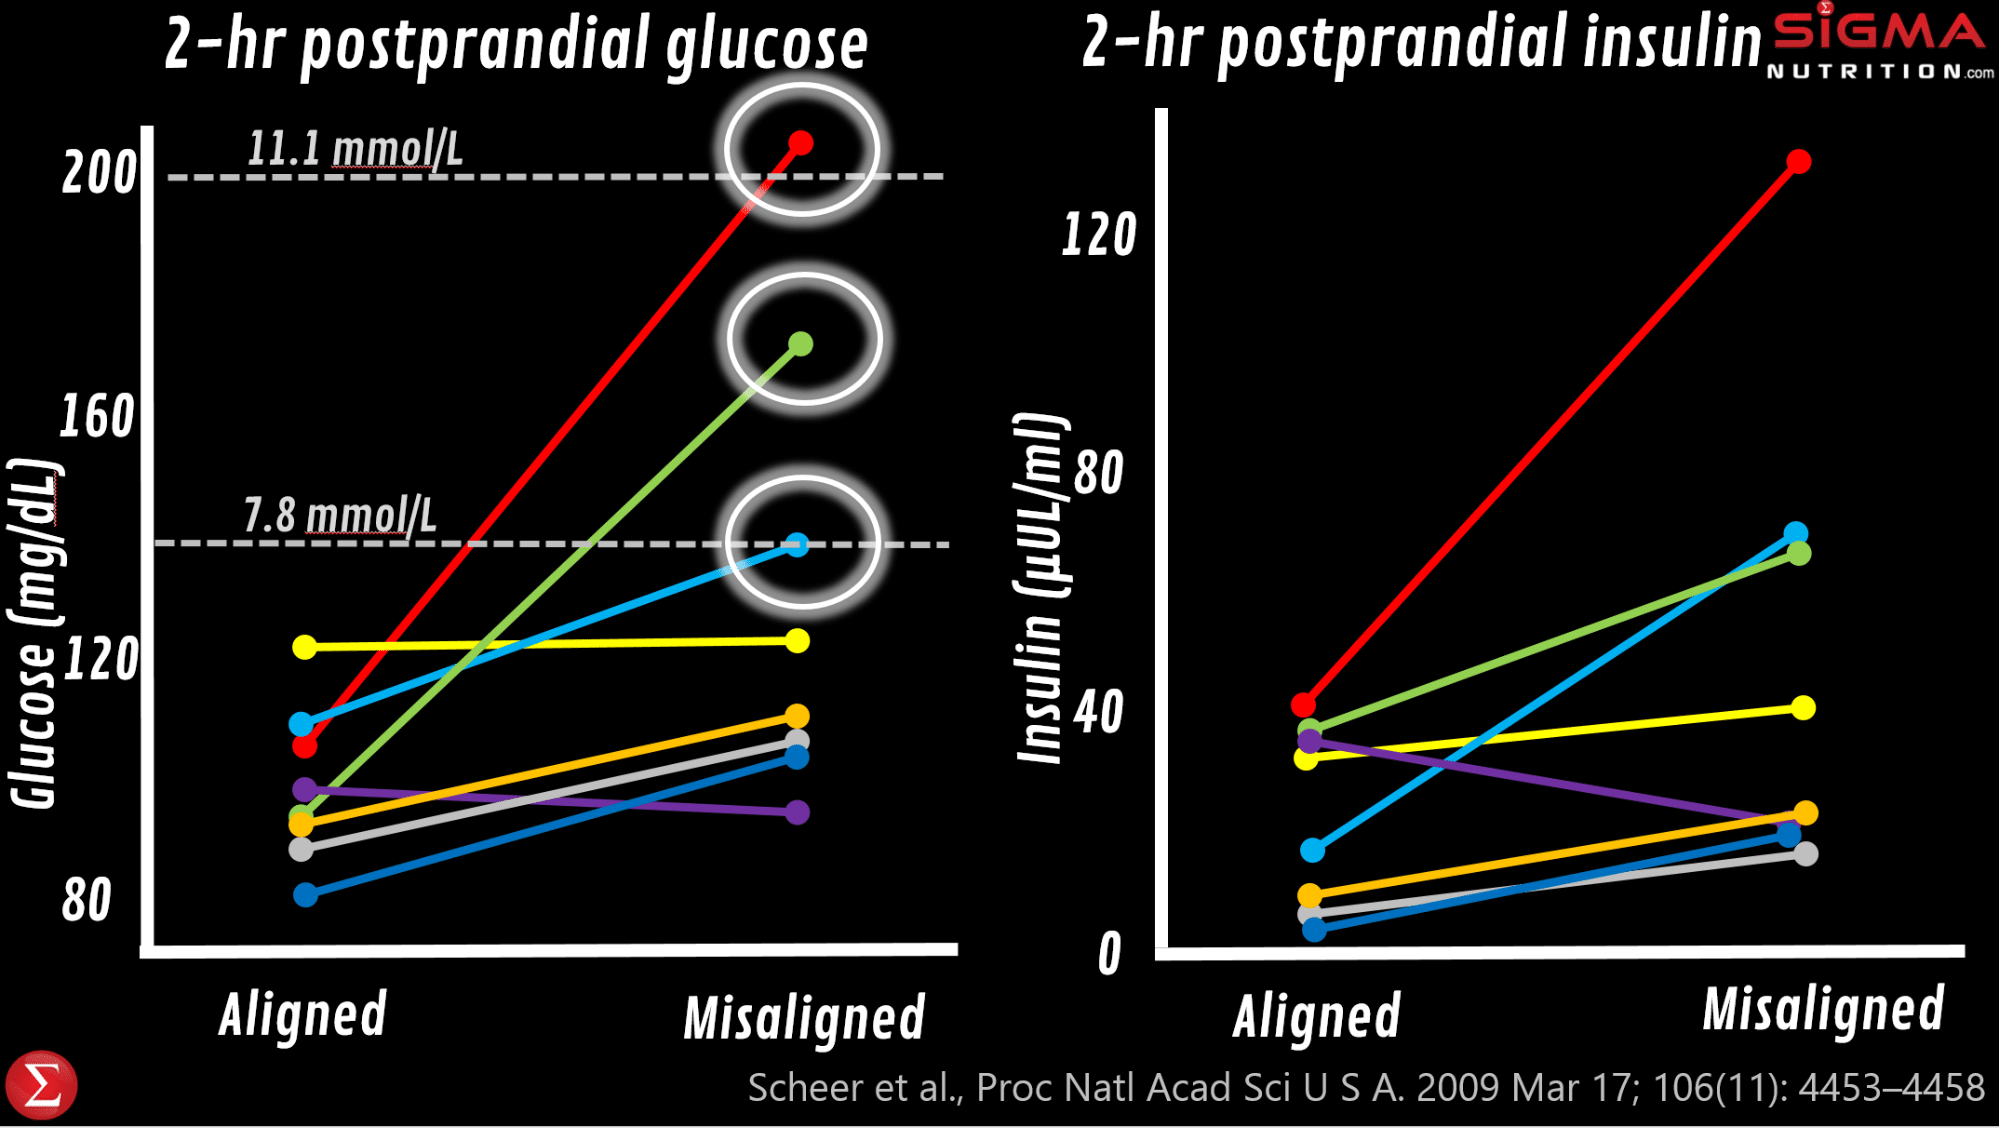 chrononutrition hen someone is in circadian misalignment, they will have elevated glucose, elevated insulin, a completely flipped cortisol rhythm, significantly lower leptin levels